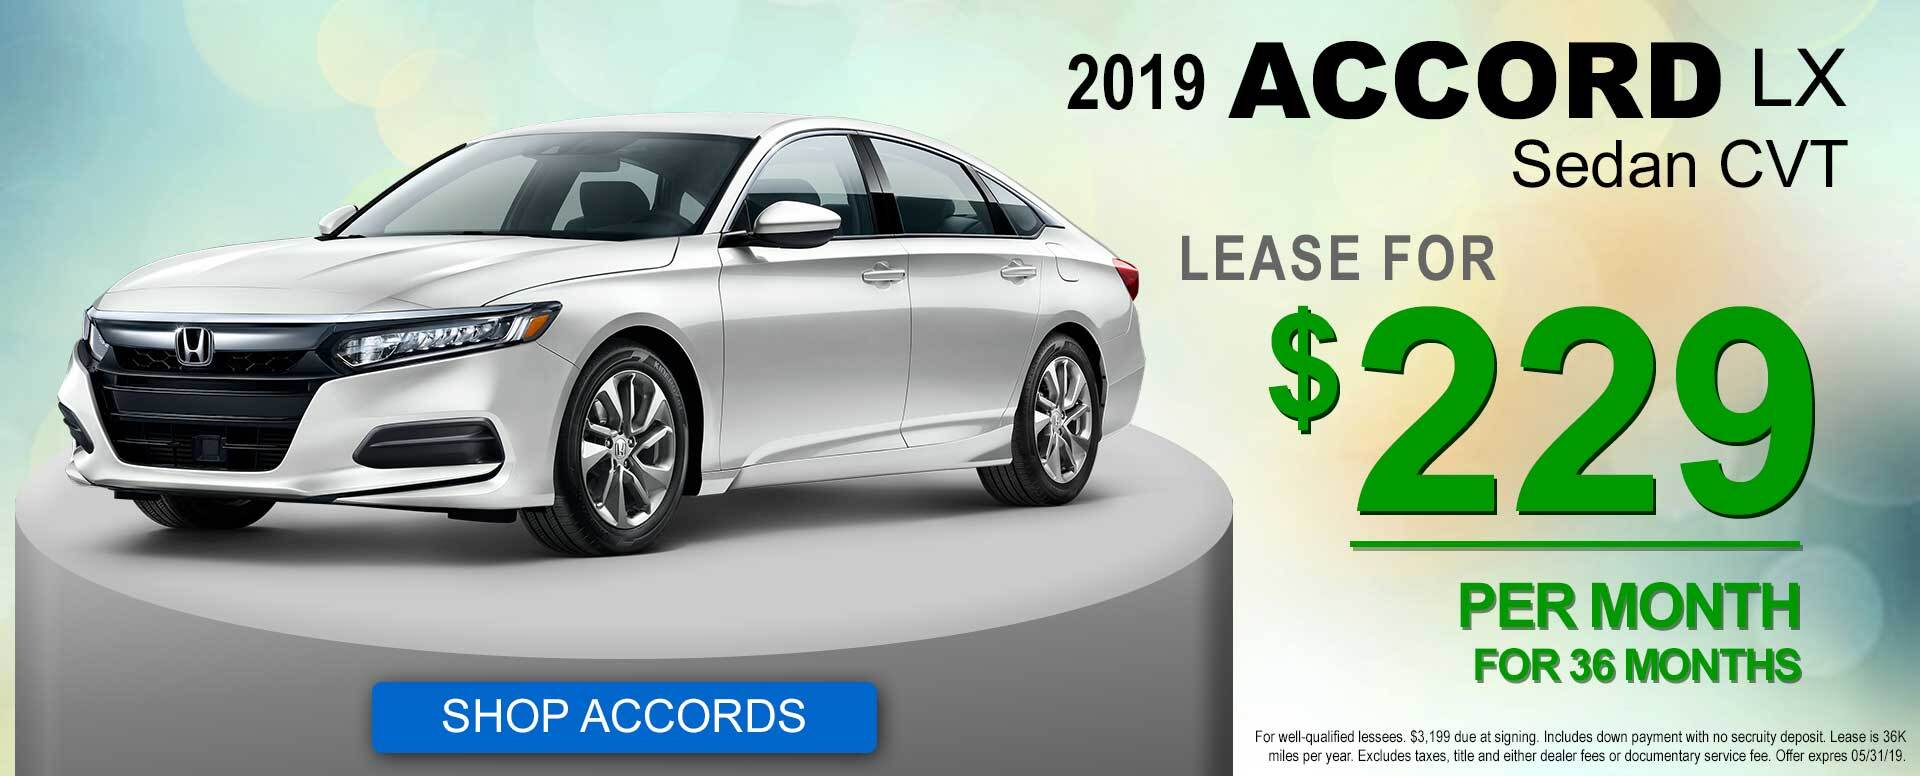 2019 Accord Lease Offer